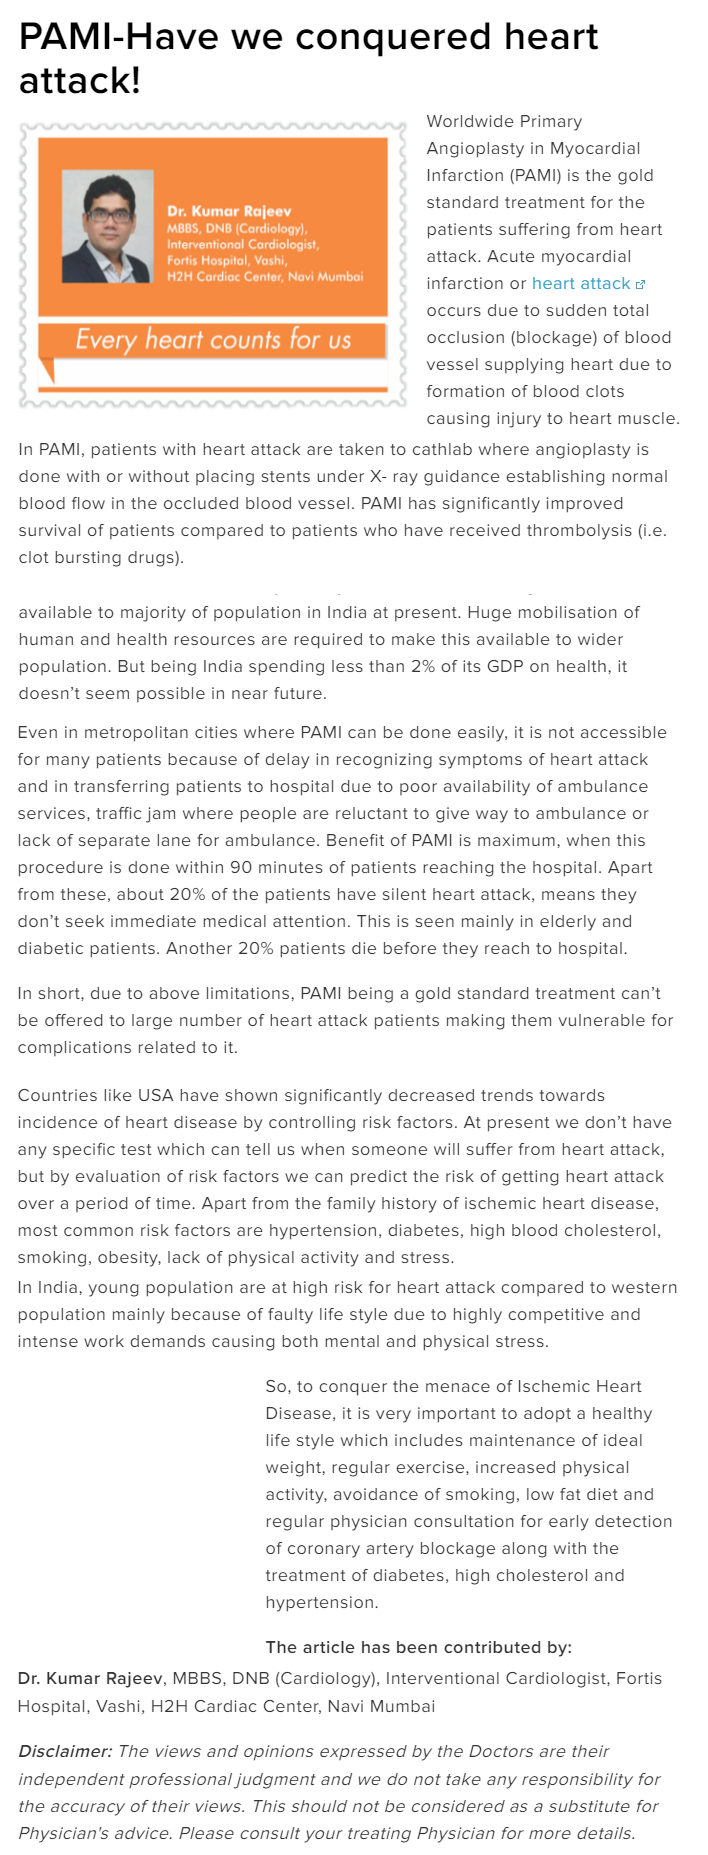 News - PAMI-Have we conquered heart attack!